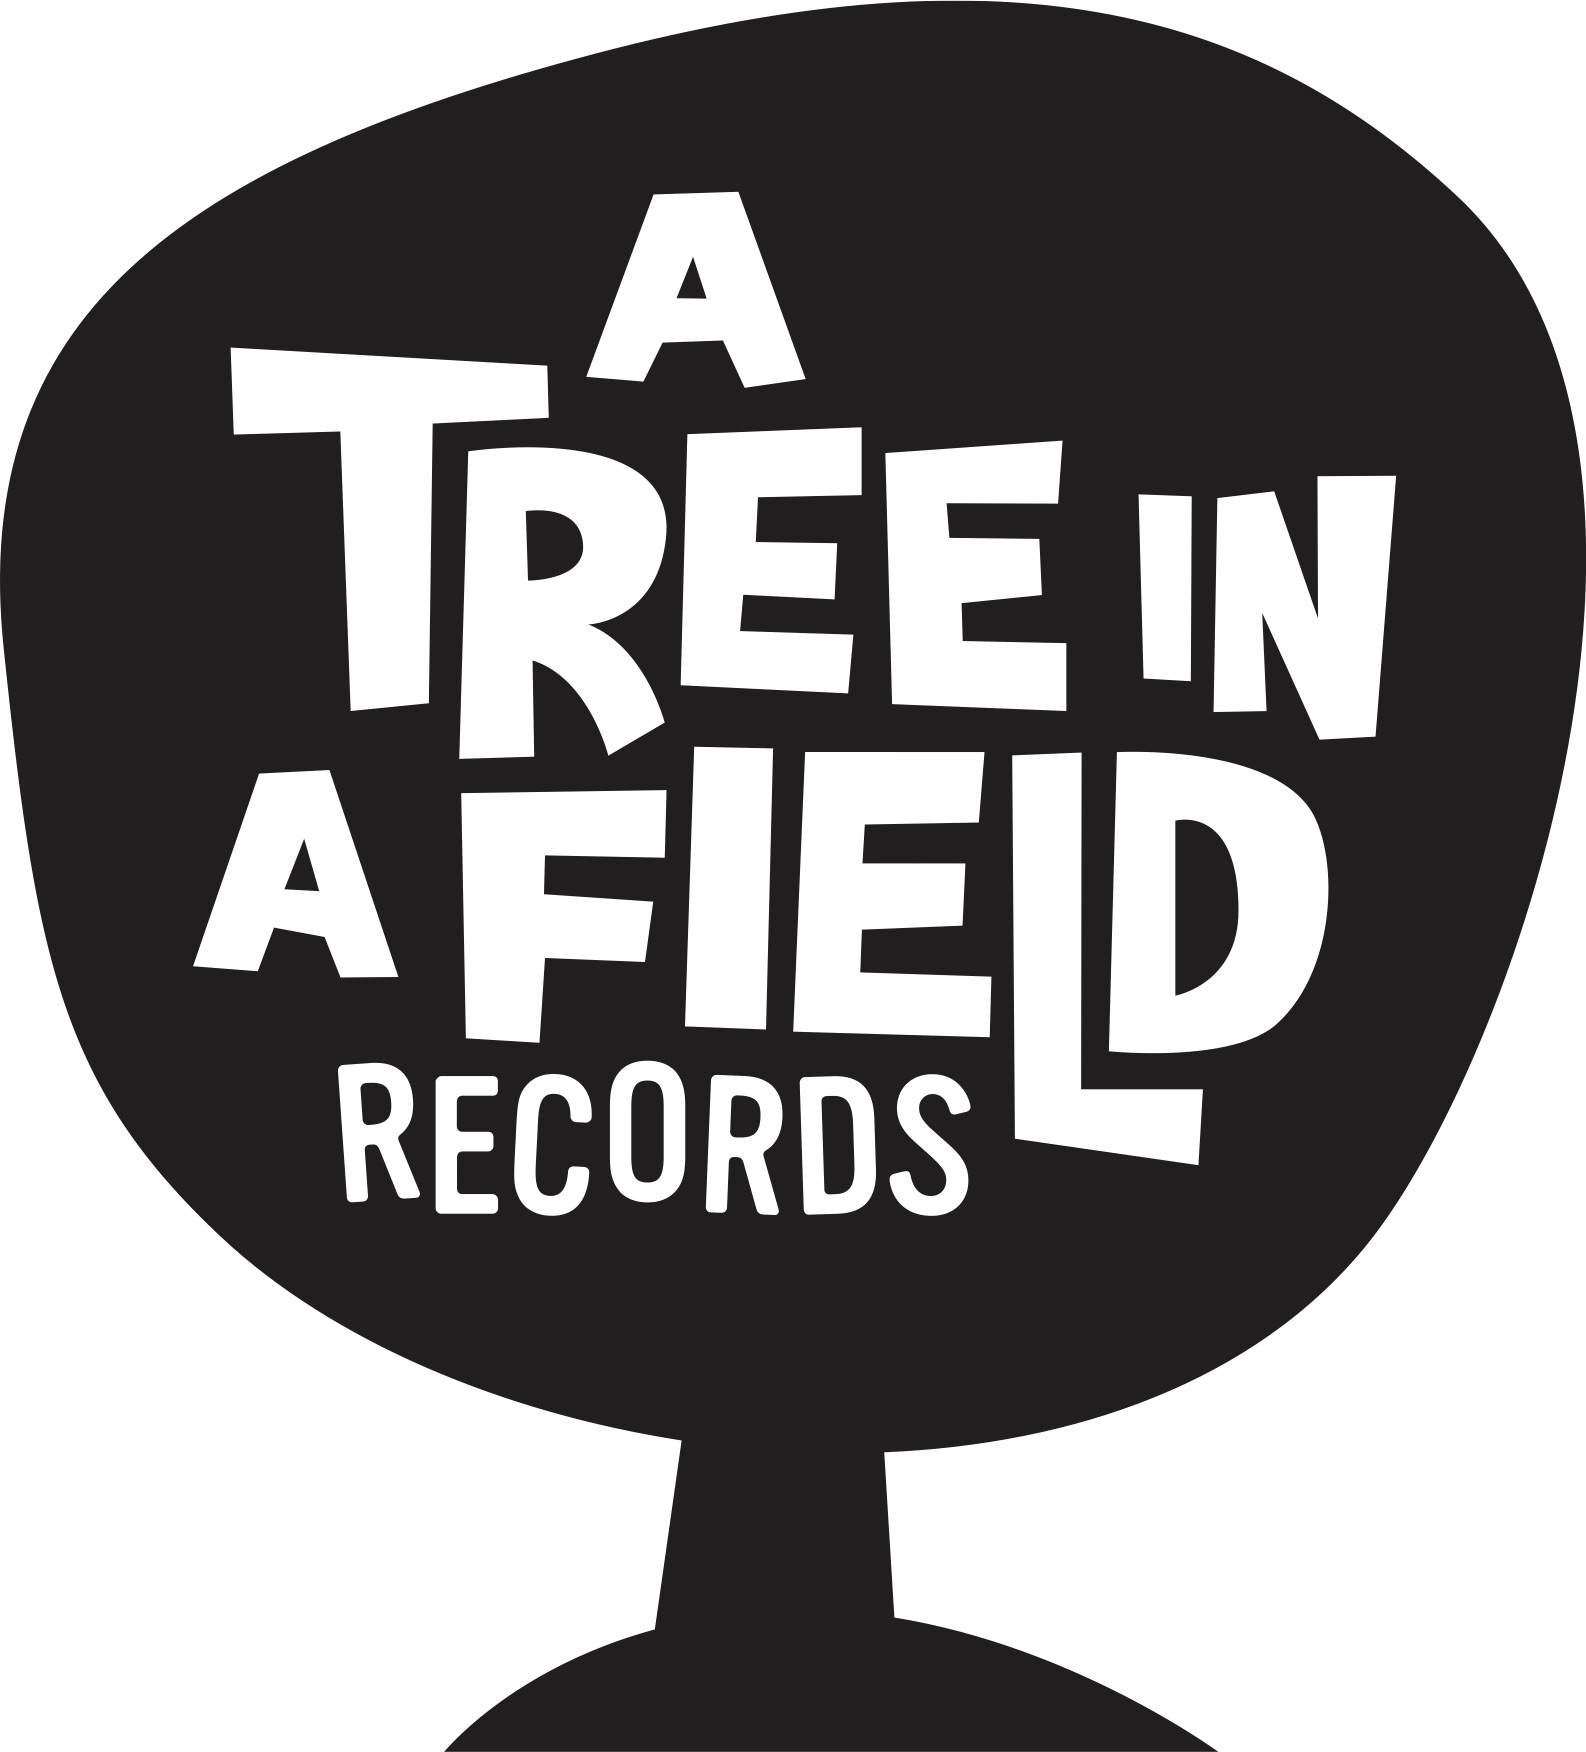 A Tree In A Field Records